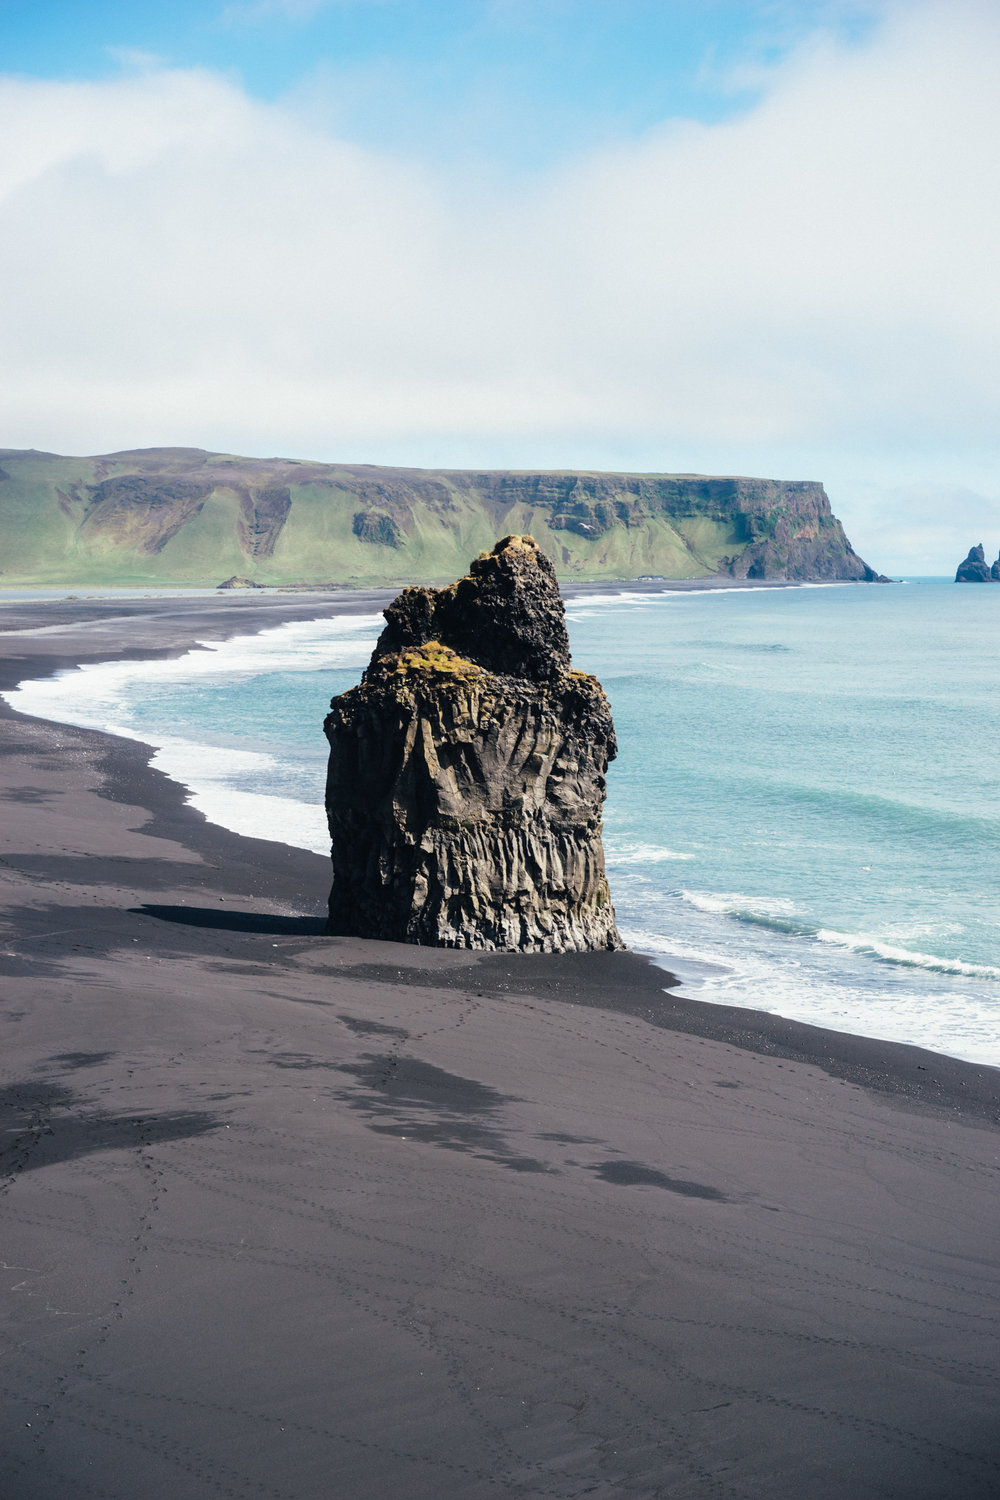 Another perspective of Reynisfjara